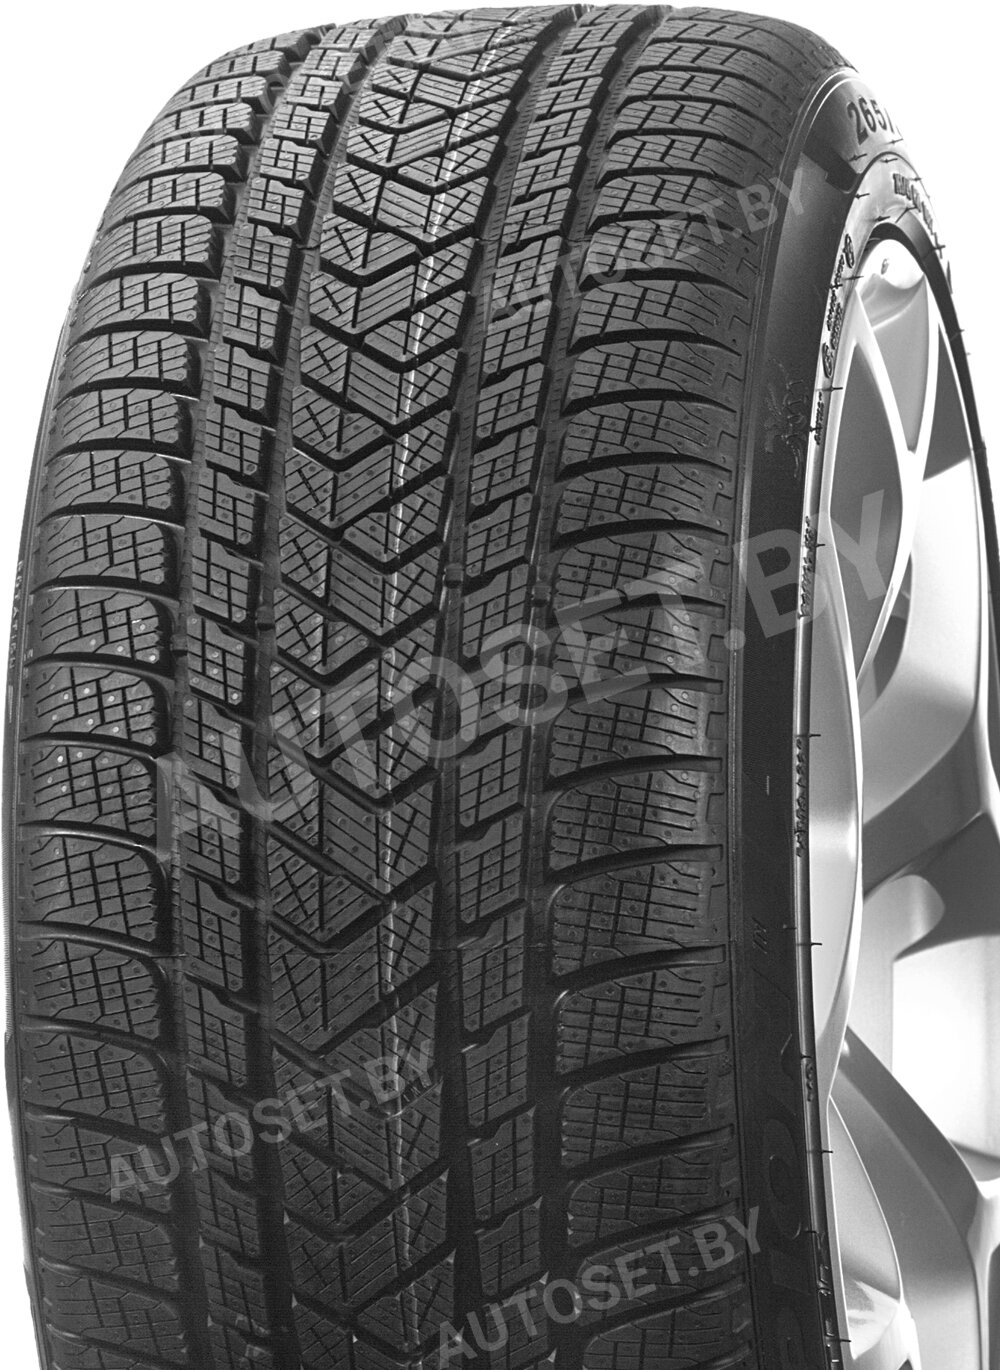 Зимняя шина PIRELLI Scorpion Winter – вид 2